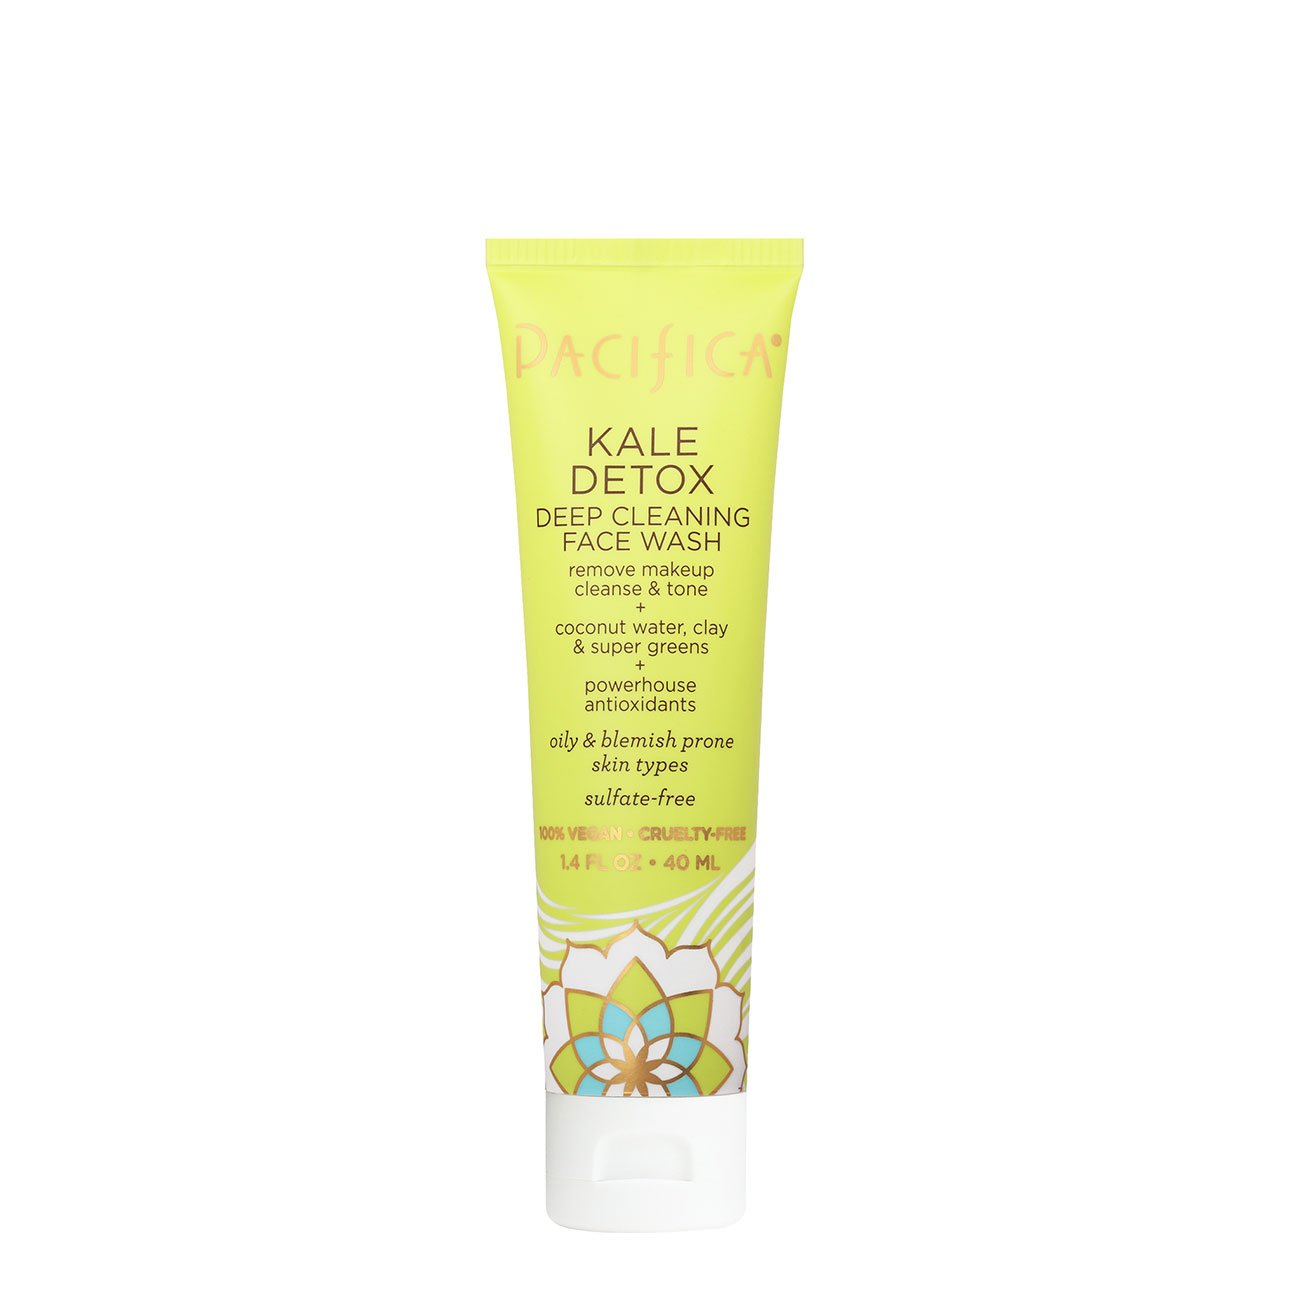 Pacifica Kale Detox Deep Cleaning Face Wash TRAVEL SIZE 1.4 ounce